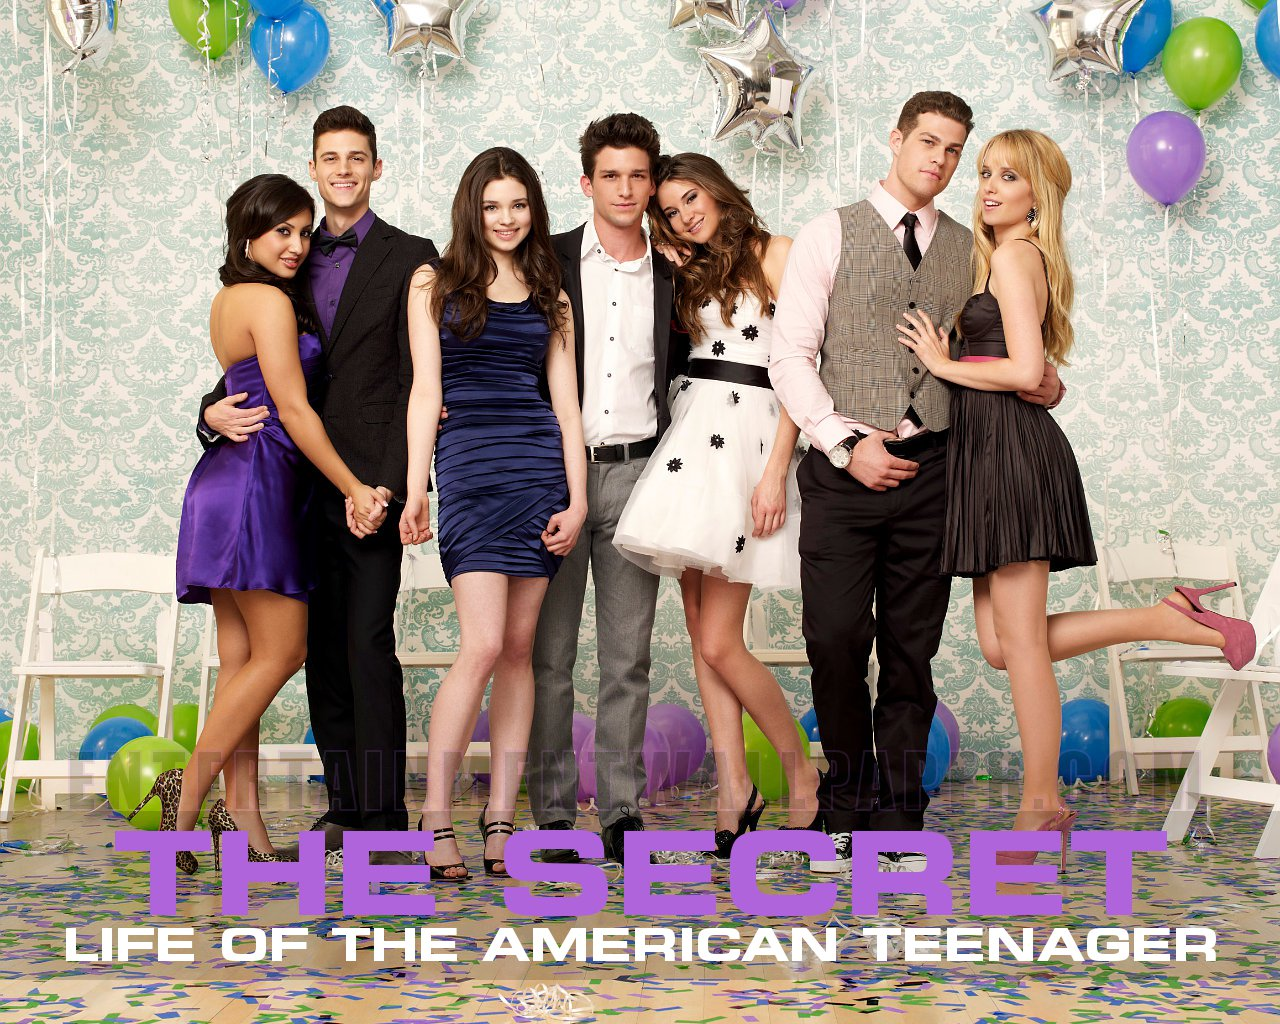 The secret life of the american teenager poster gallery free tv